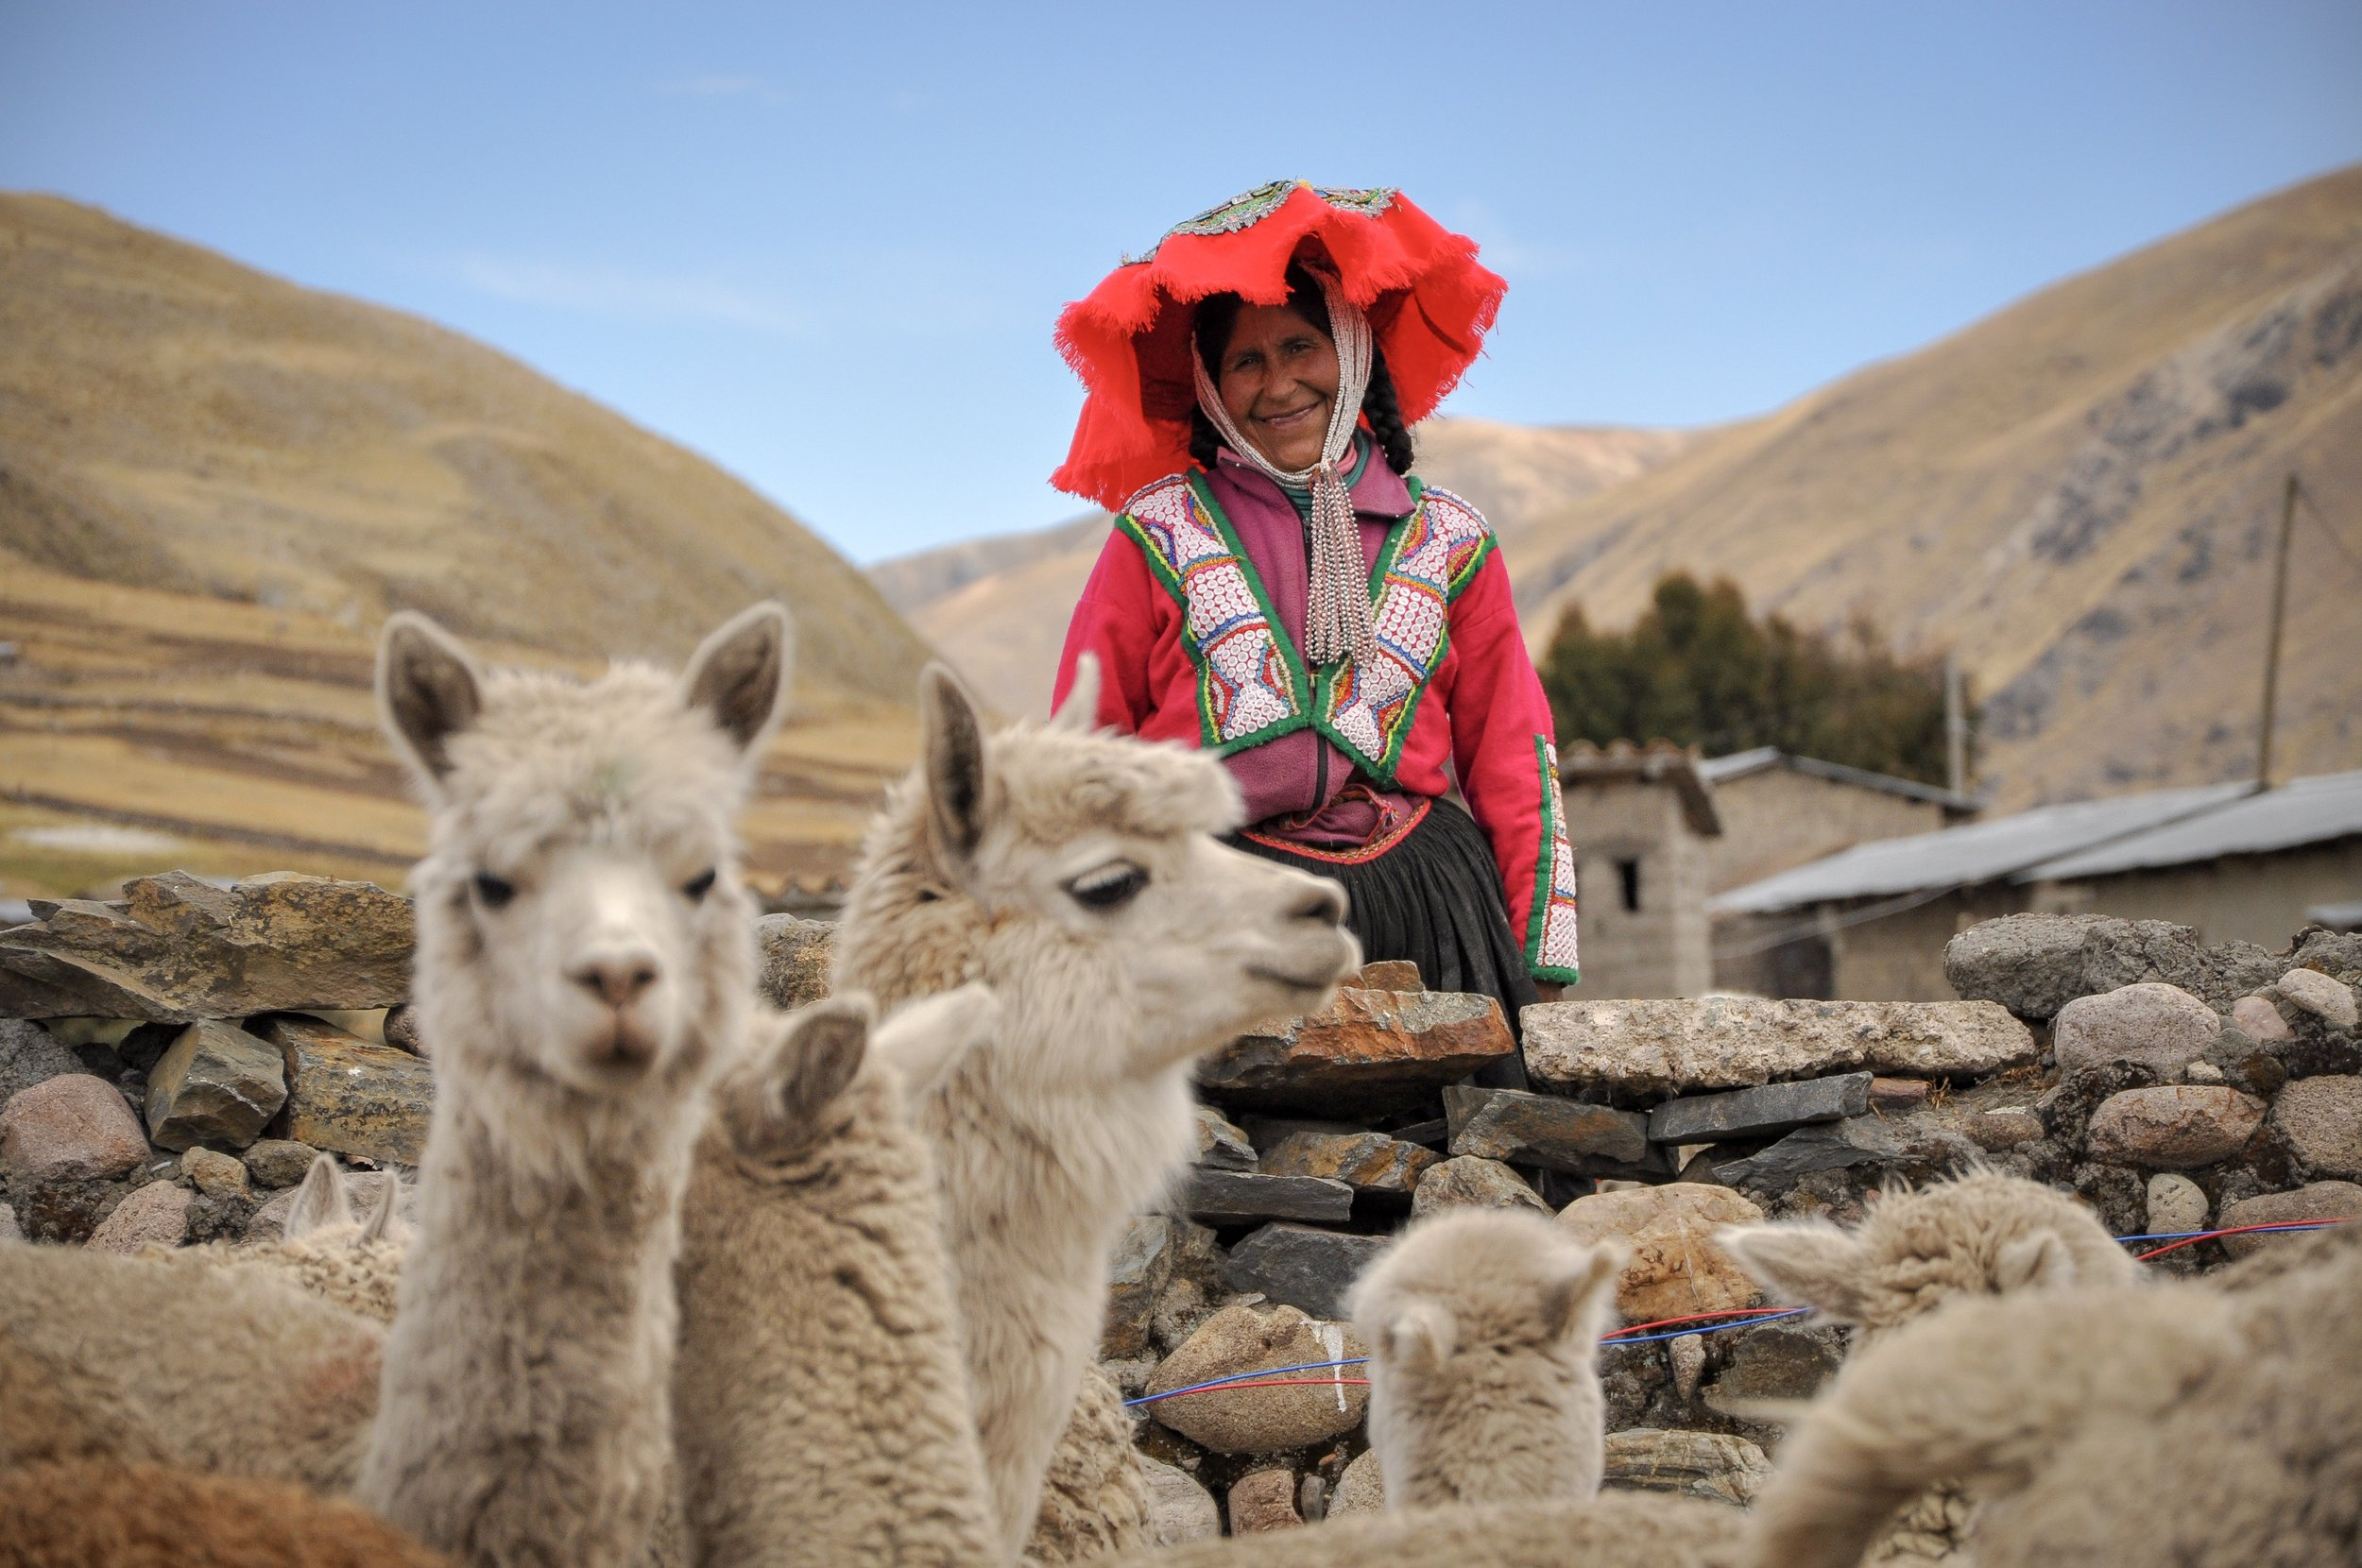 Our artisans work mostly with Huacaya alpaca, as they adapt easily to the extreme climate at 13,000 ft.